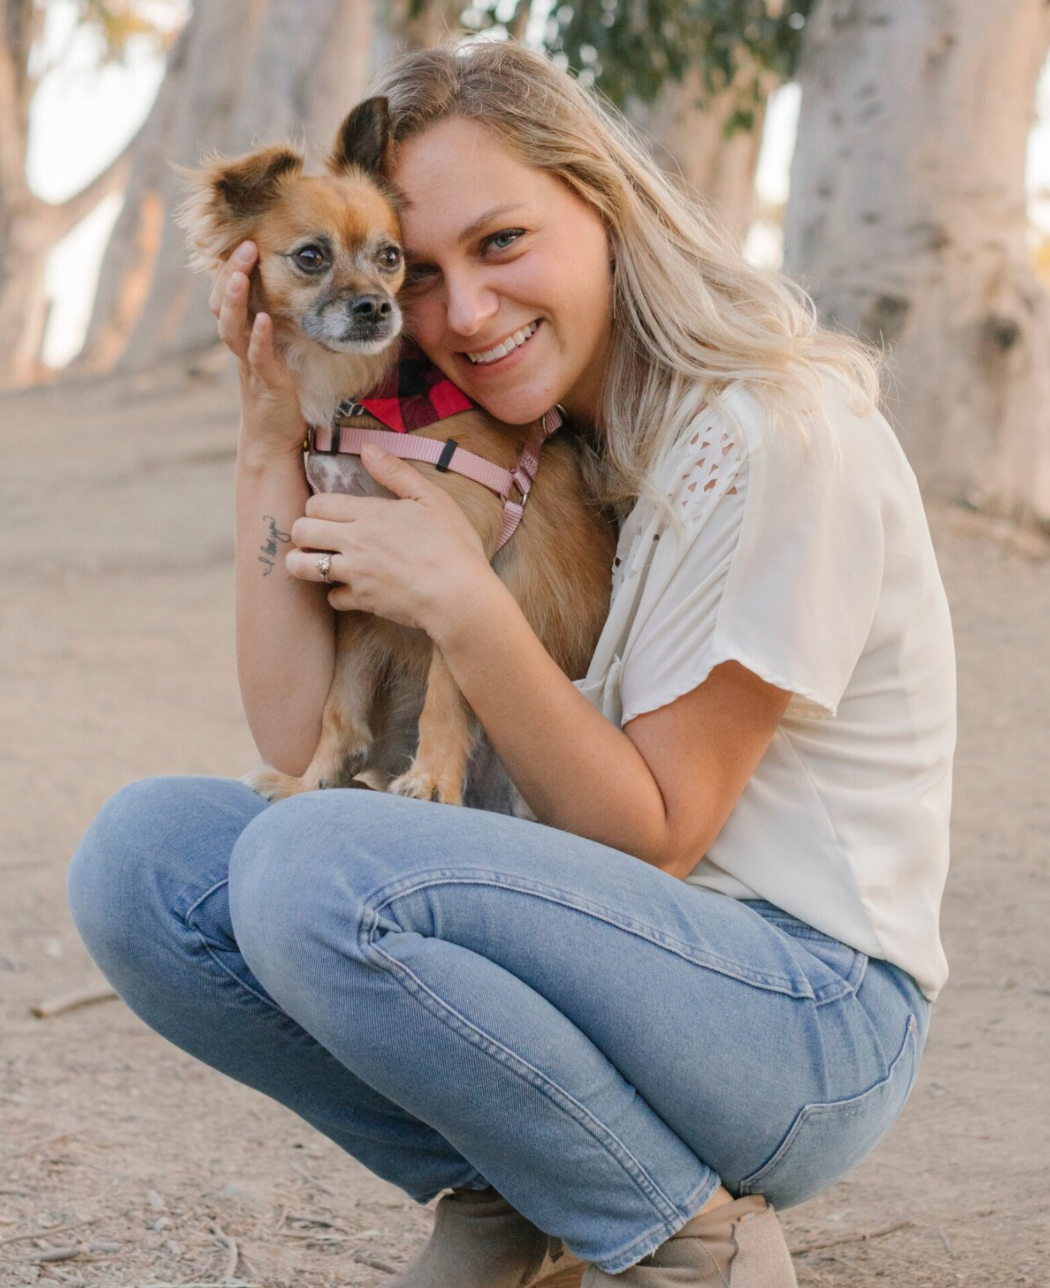 Michelle McSwain with her cute dog